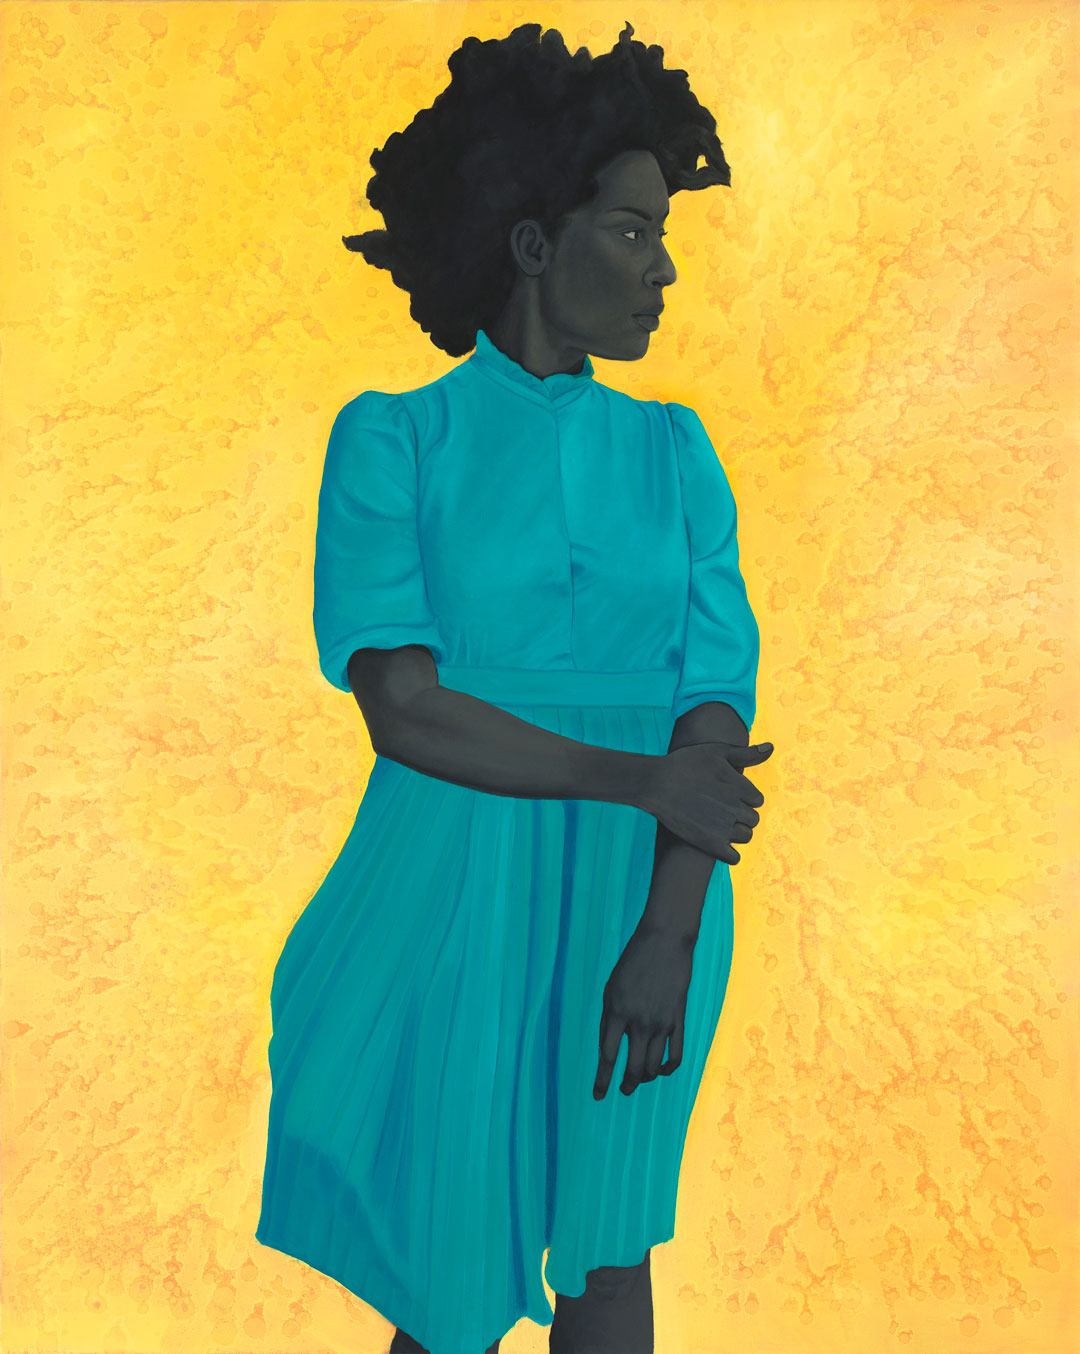 Image description: Saint Woman, Amy Sherald, 54 x 43 inches, oil on canvas. A portrait of a Black woman in a blue dress, looking to the side against a brilliant yellow background. The woman is shown from the knee up, her body facing front while her head is turned to the right. Her dark skin is painted in hues of deep gray. Her hair is big and full, creating a cloud of black curls around her face. She has high cheekbones, fine arched eyebrows and dark eyes. She wears a high necked turquoise blue dress with elbow length sleeves puffed at the shoulder. Her right arm crosses her body and grasps her left arm which rests by her side. The skirt of her blue dress is softly pleated and gently flares out to the left as if caught in a breeze. The bright yellow textured background seems to glow behind her.